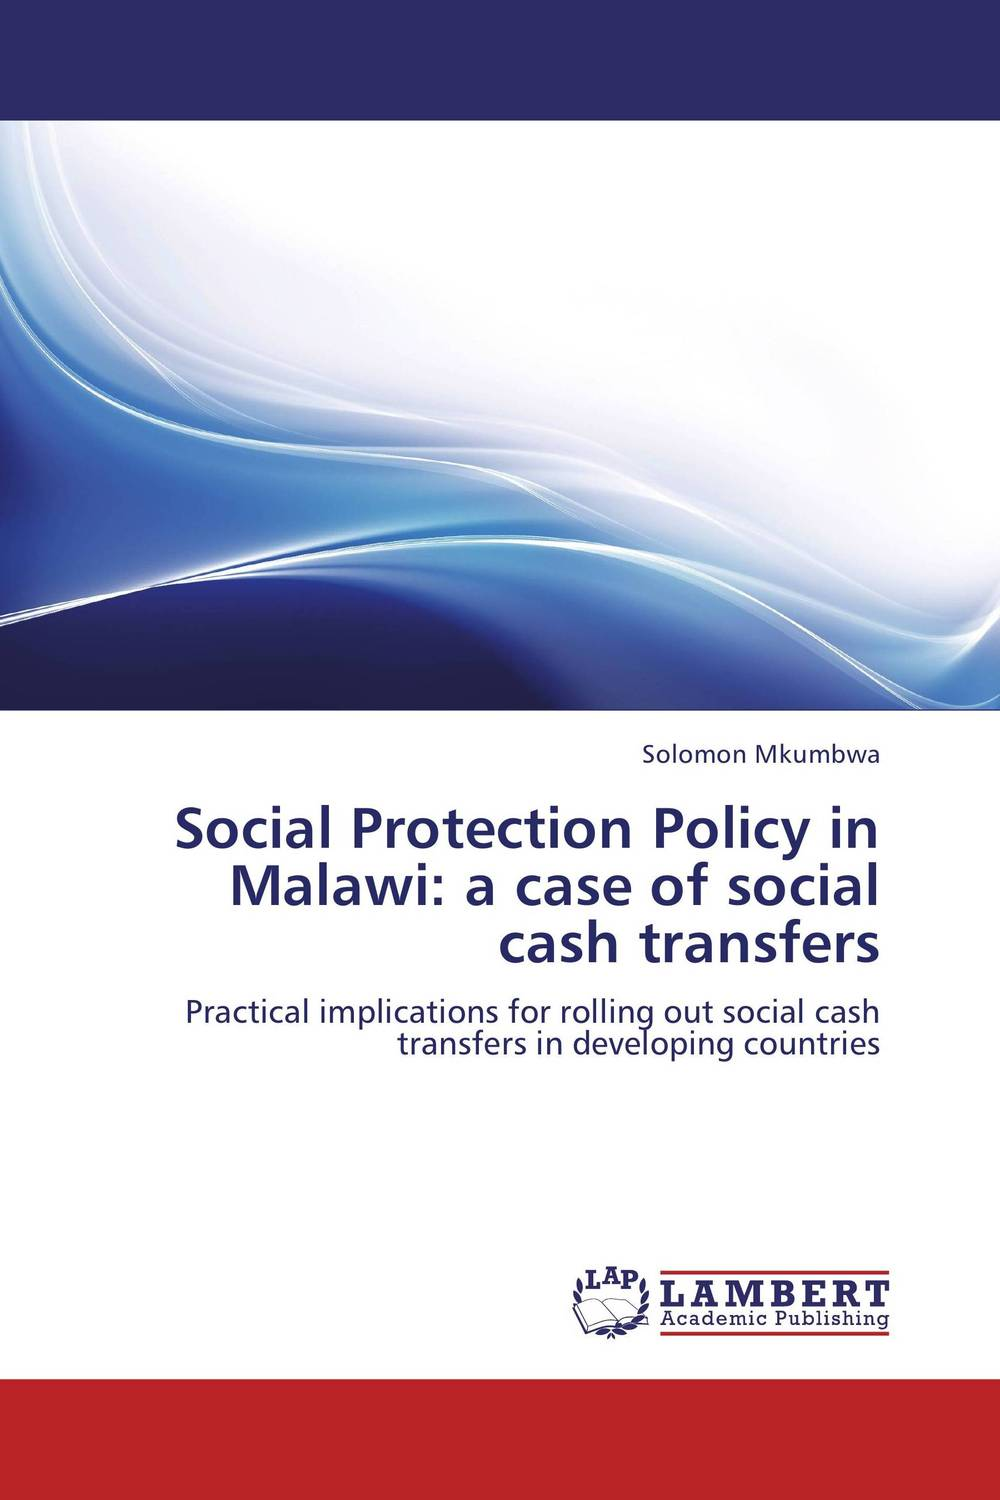 Social Protection Policy in Malawi: a case of social cash transfers the viabilities of musyarakah as social protection mechanism